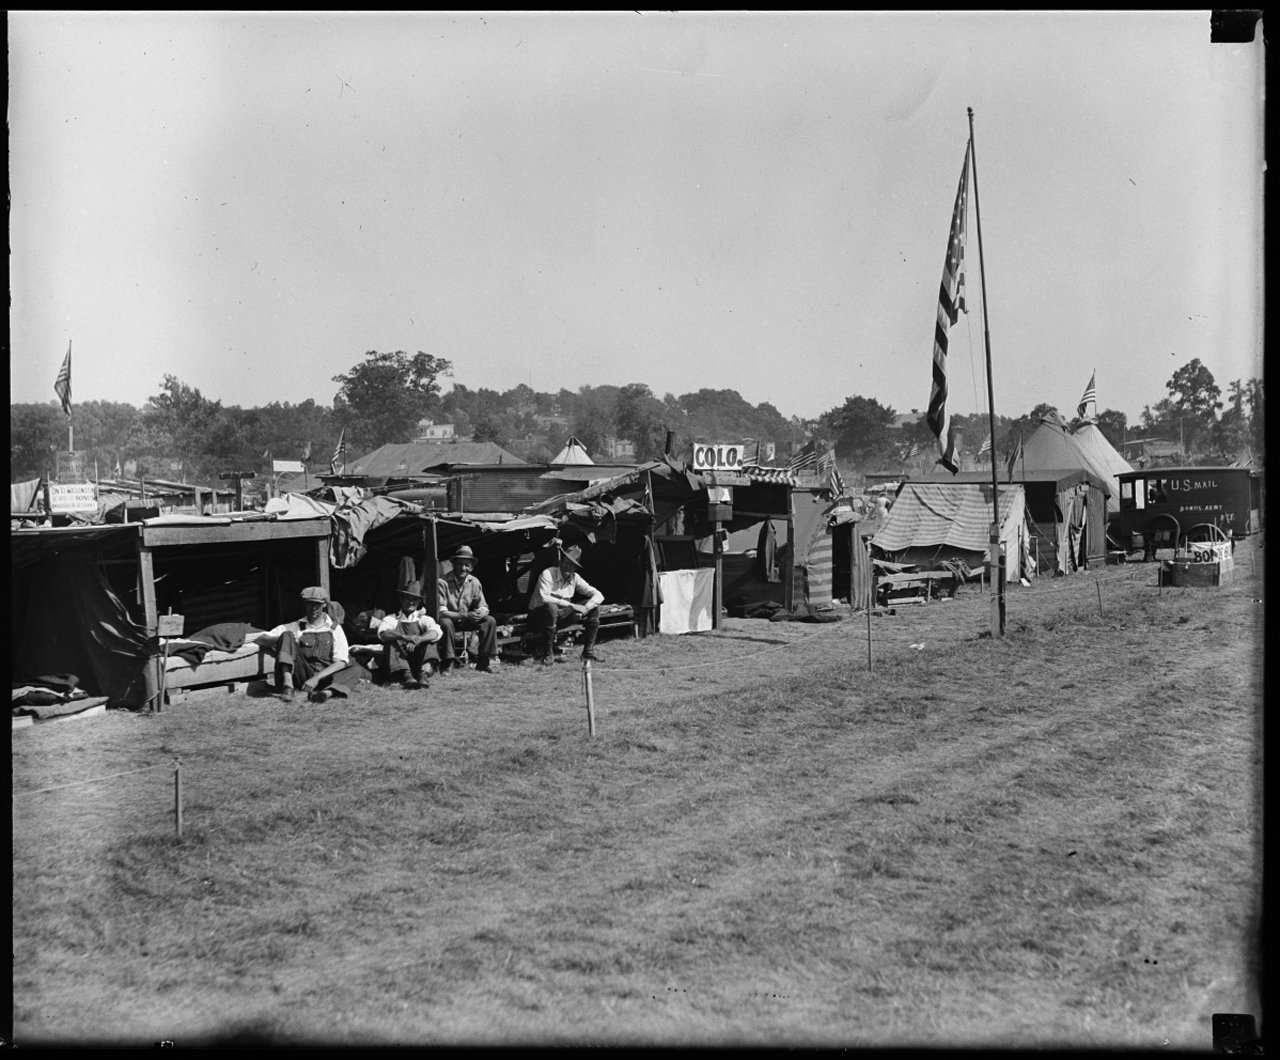 Bonus Army Washington D.C. 1932. [Library of Congress] & Tent City America